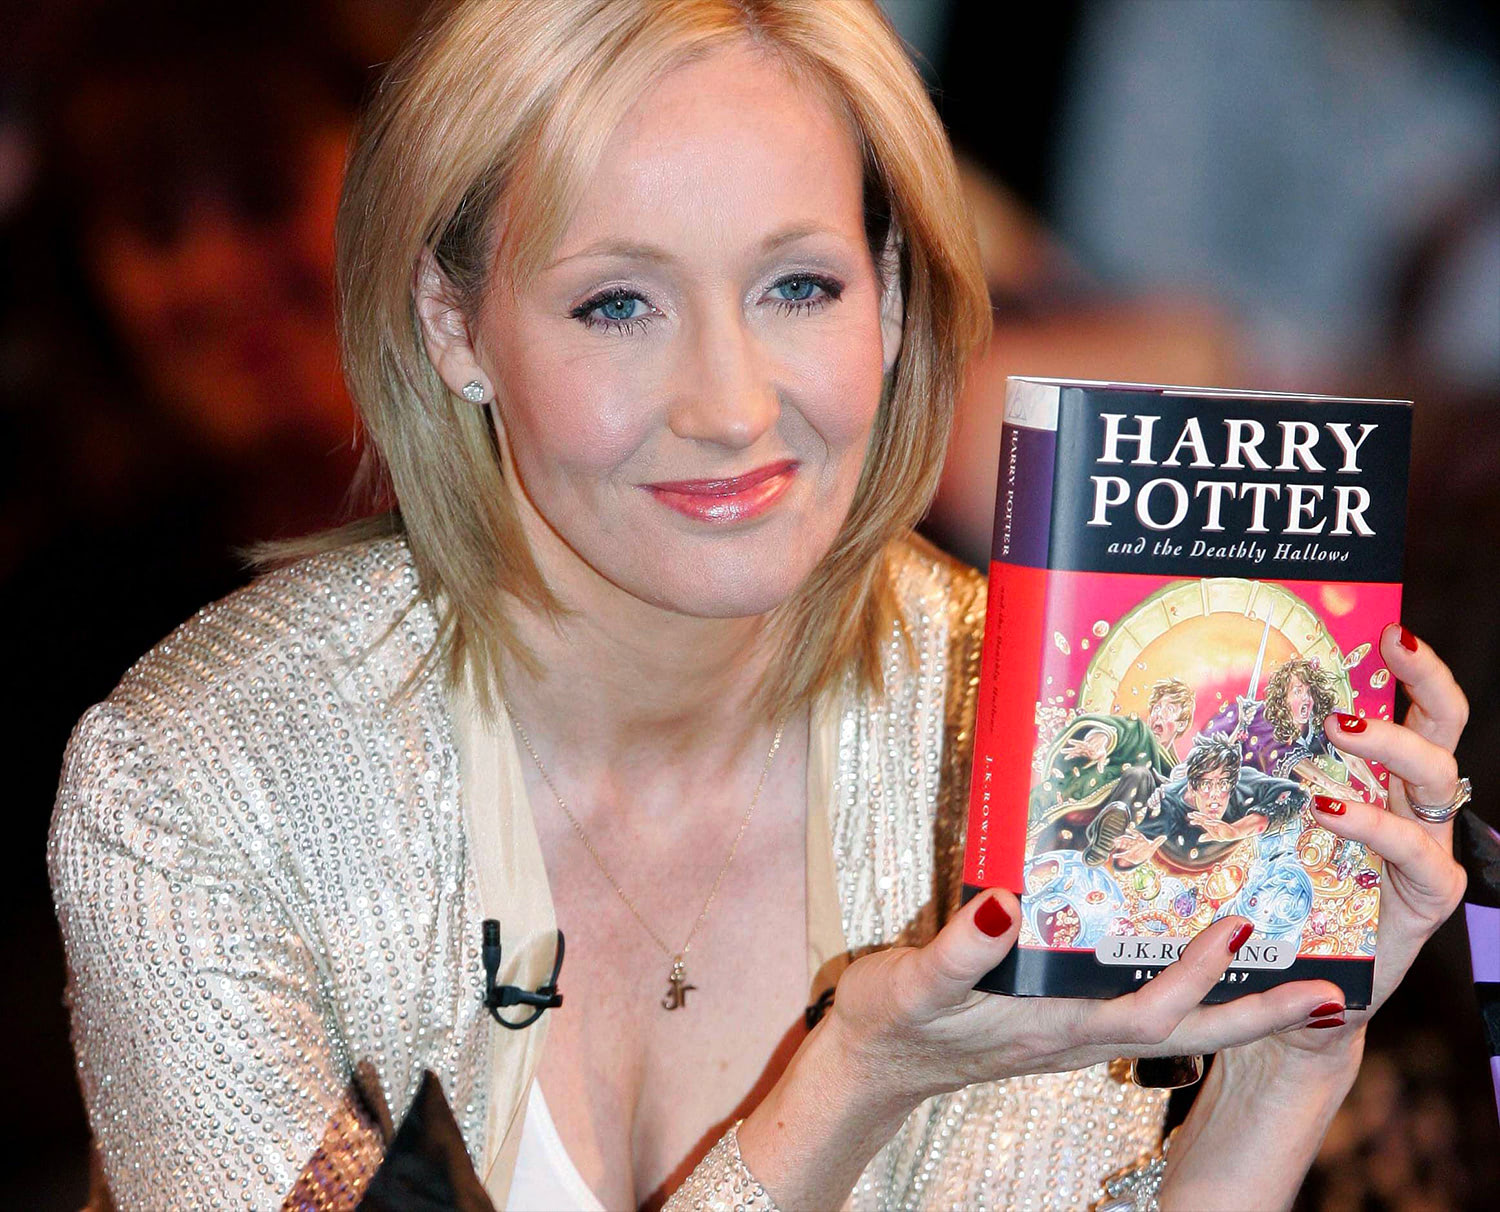 J.K. Rowling with 'Deathly Hallows'